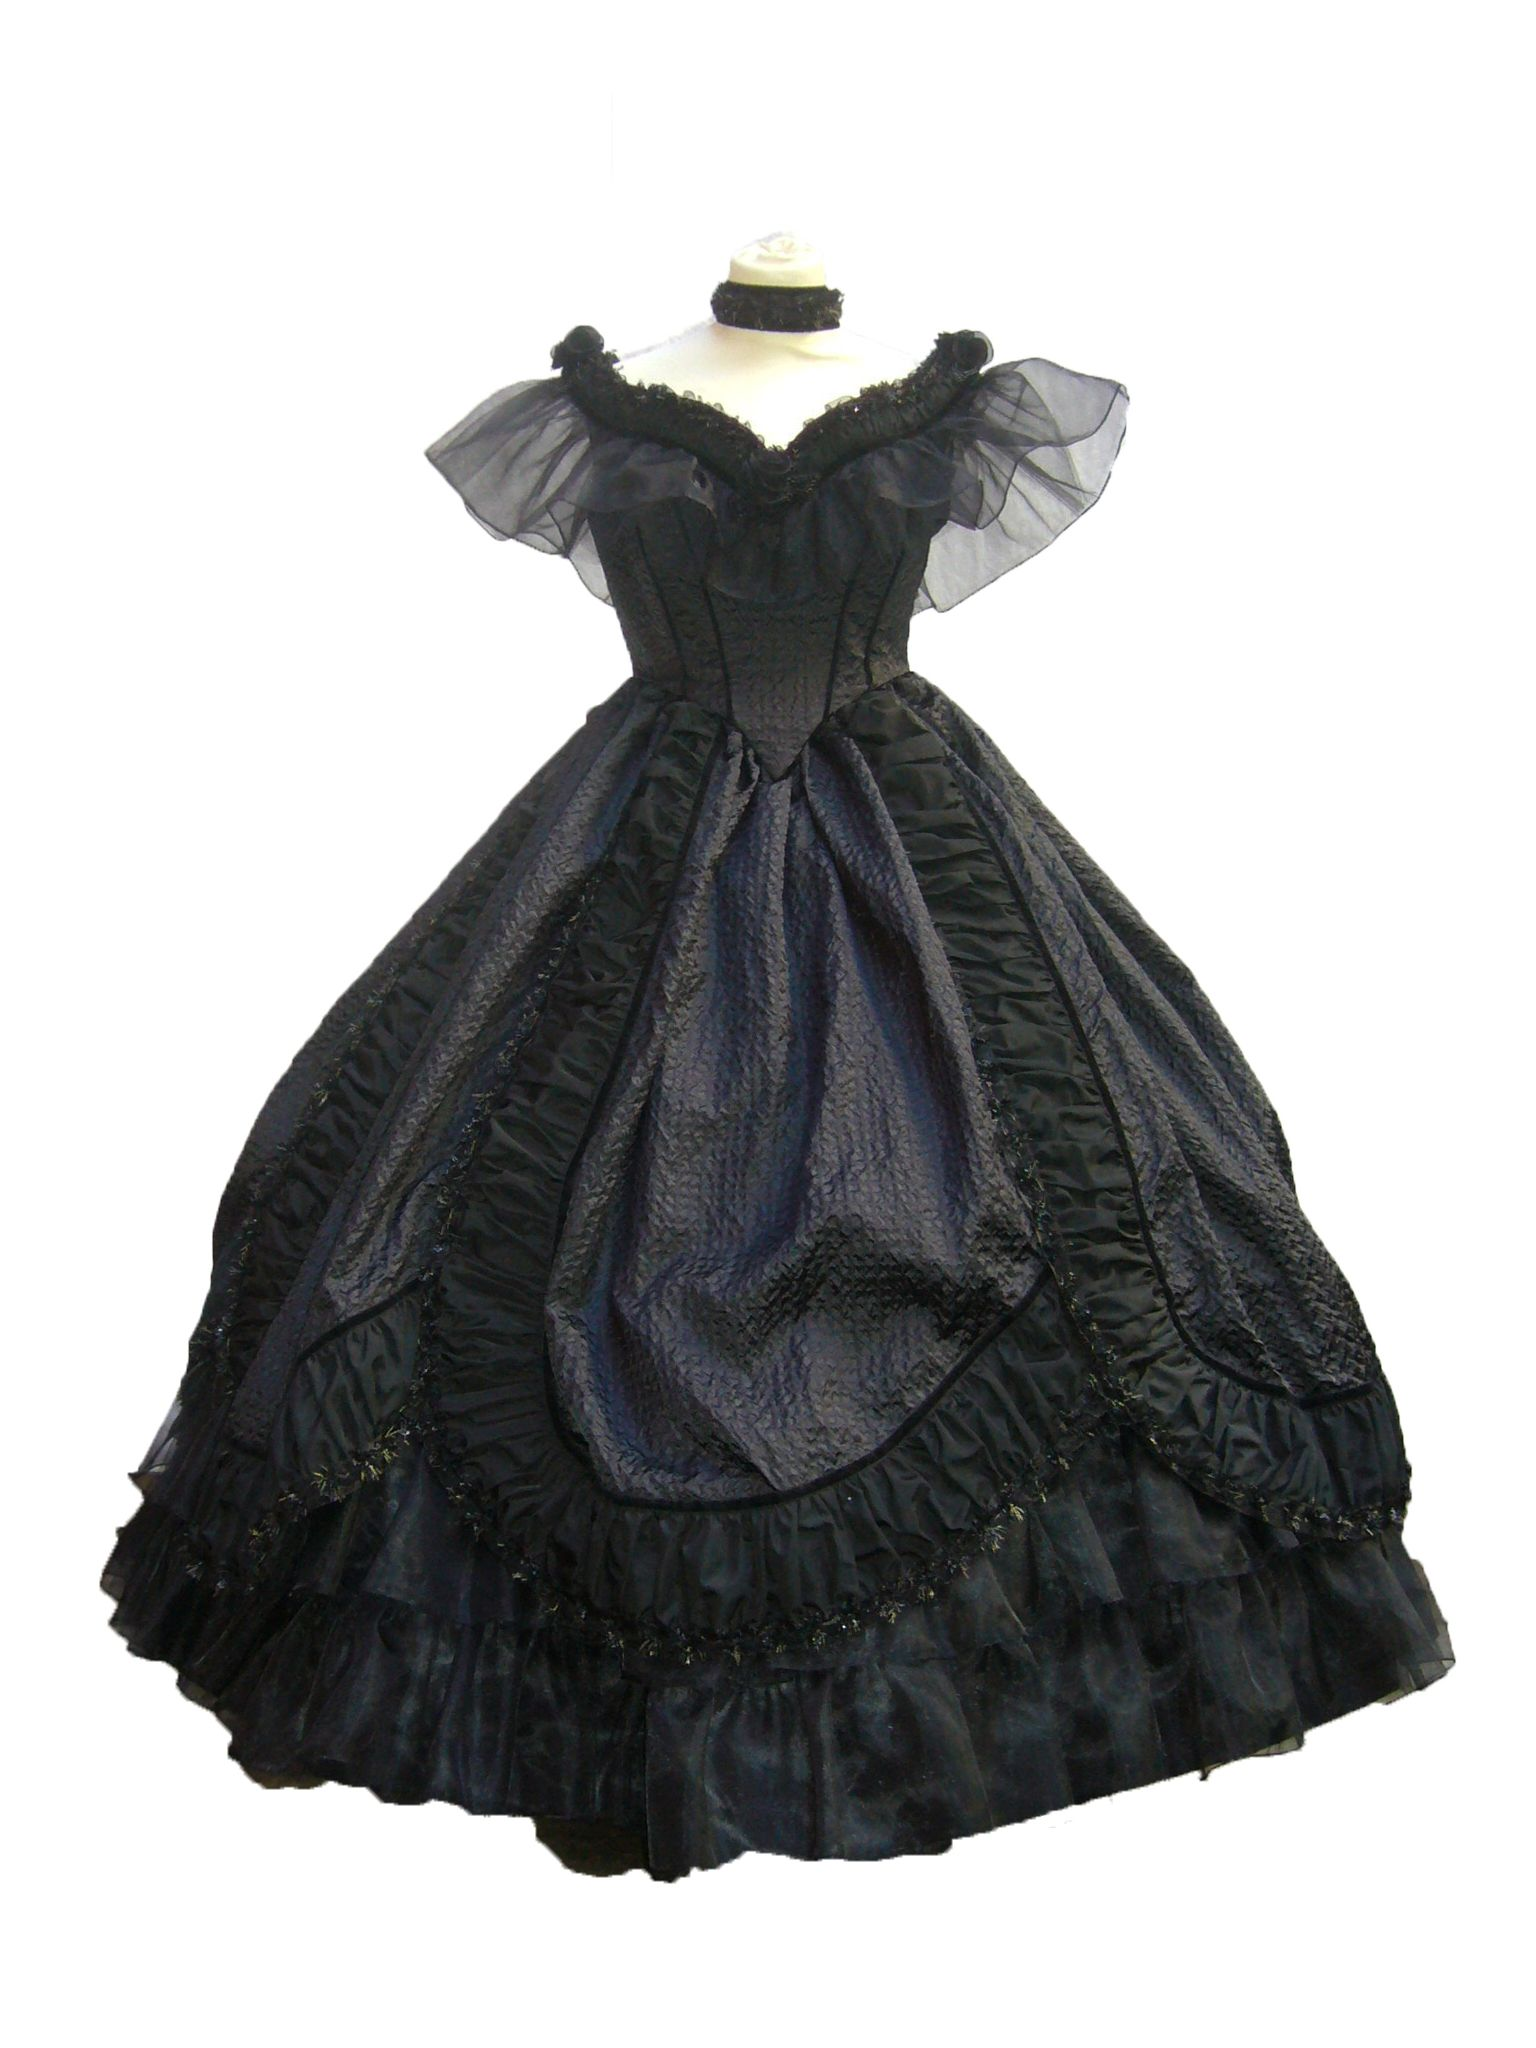 """Venice Atelier: historical costume 1800s #historical #costume #dress #carnival #1800s #19th_century #venice #veniceatelier  In """"Hearts of Strangers"""" Miz Maureen chose to wear a black taffeta gown to the opera.  Her only embellishment was her silver and diamond tiara."""